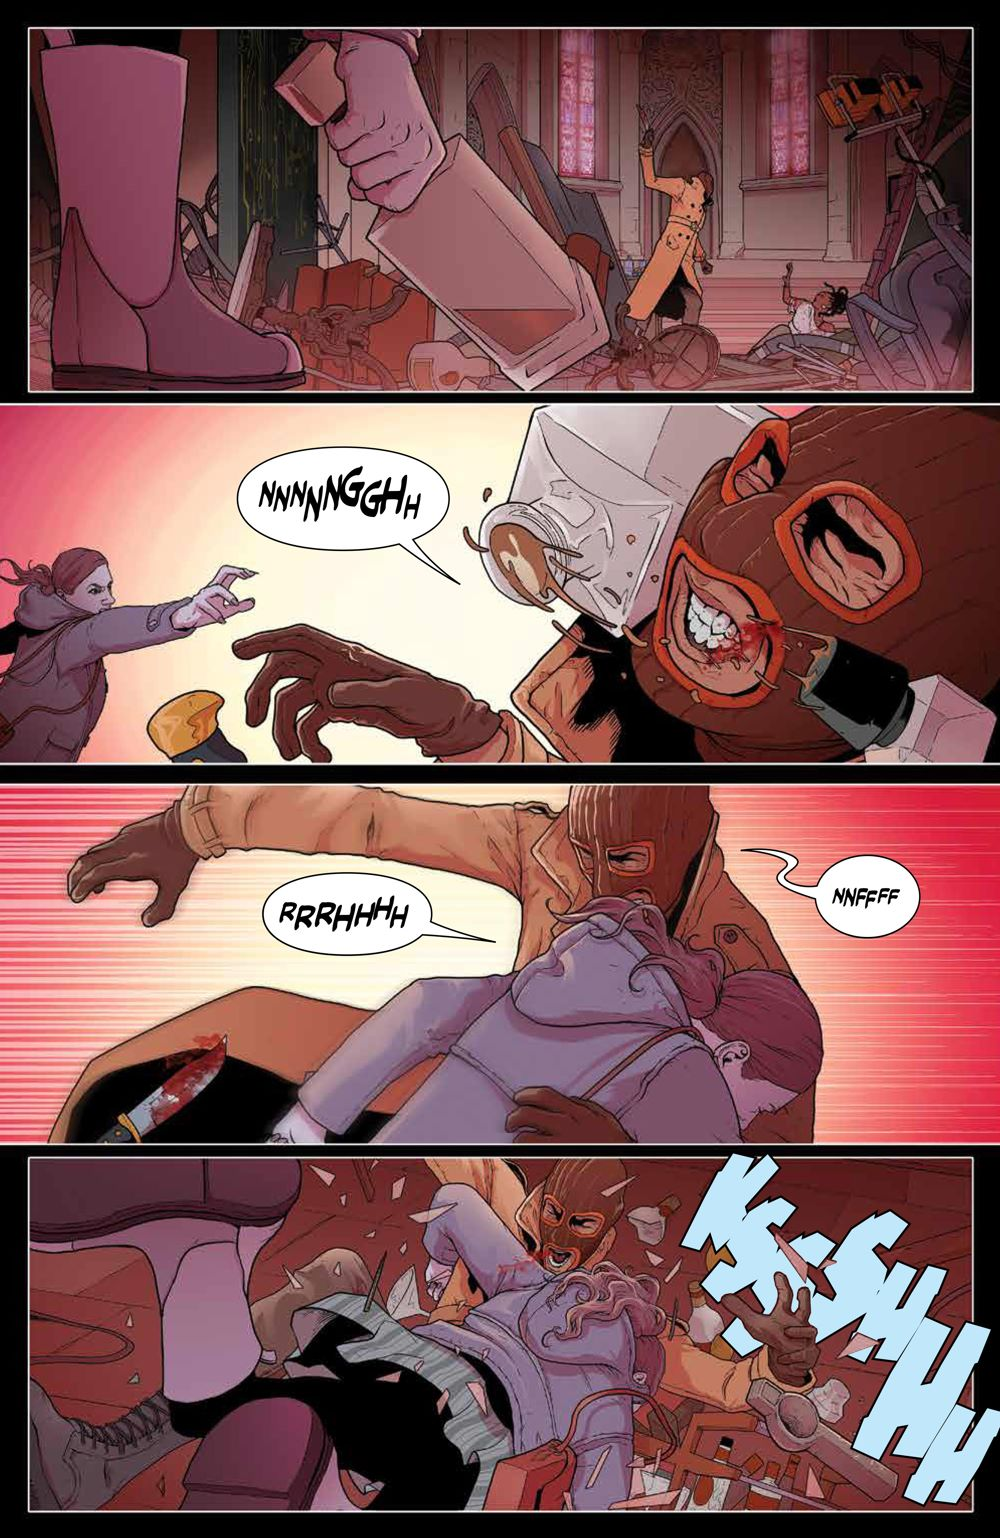 RedMother_009_PRESS_6 ComicList Previews: THE RED MOTHER #9